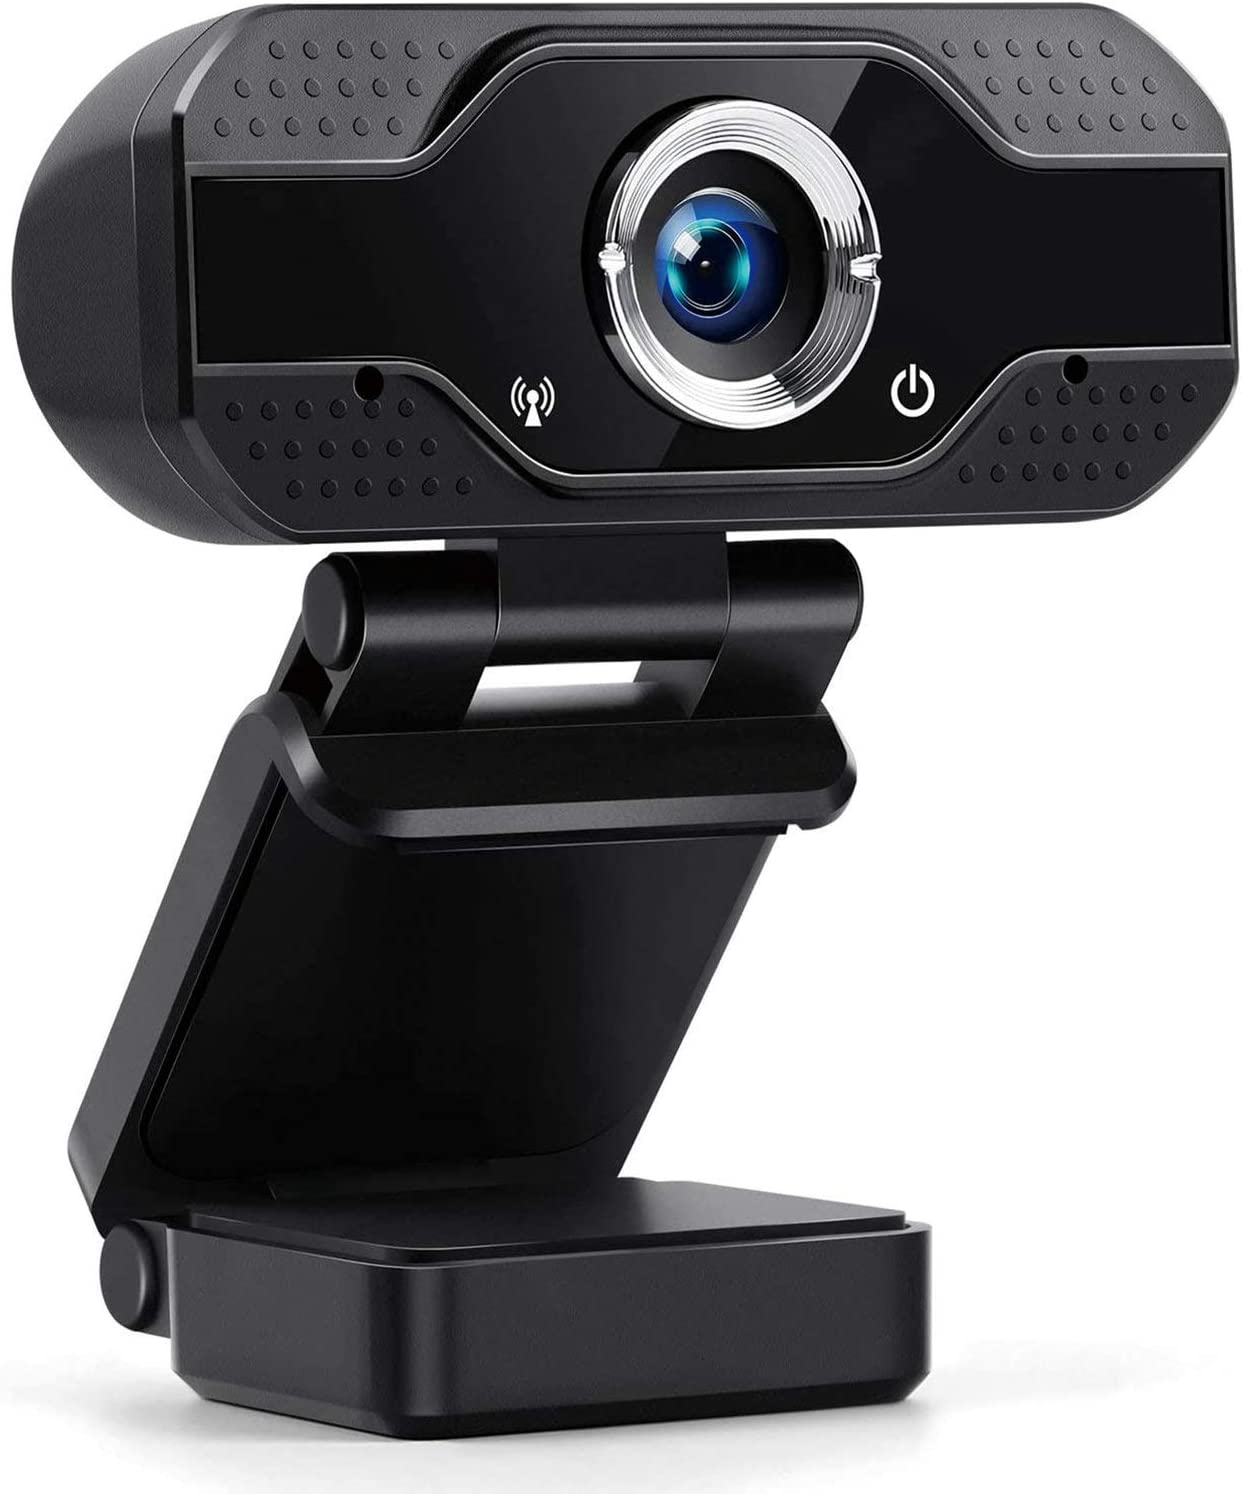 DALLUX HD 1080P Webcam with Built-in Microphone,Auto Focus USB Streaming PC Computer Web Camera with Wide View Angle for Video Calling Recording Conferencing